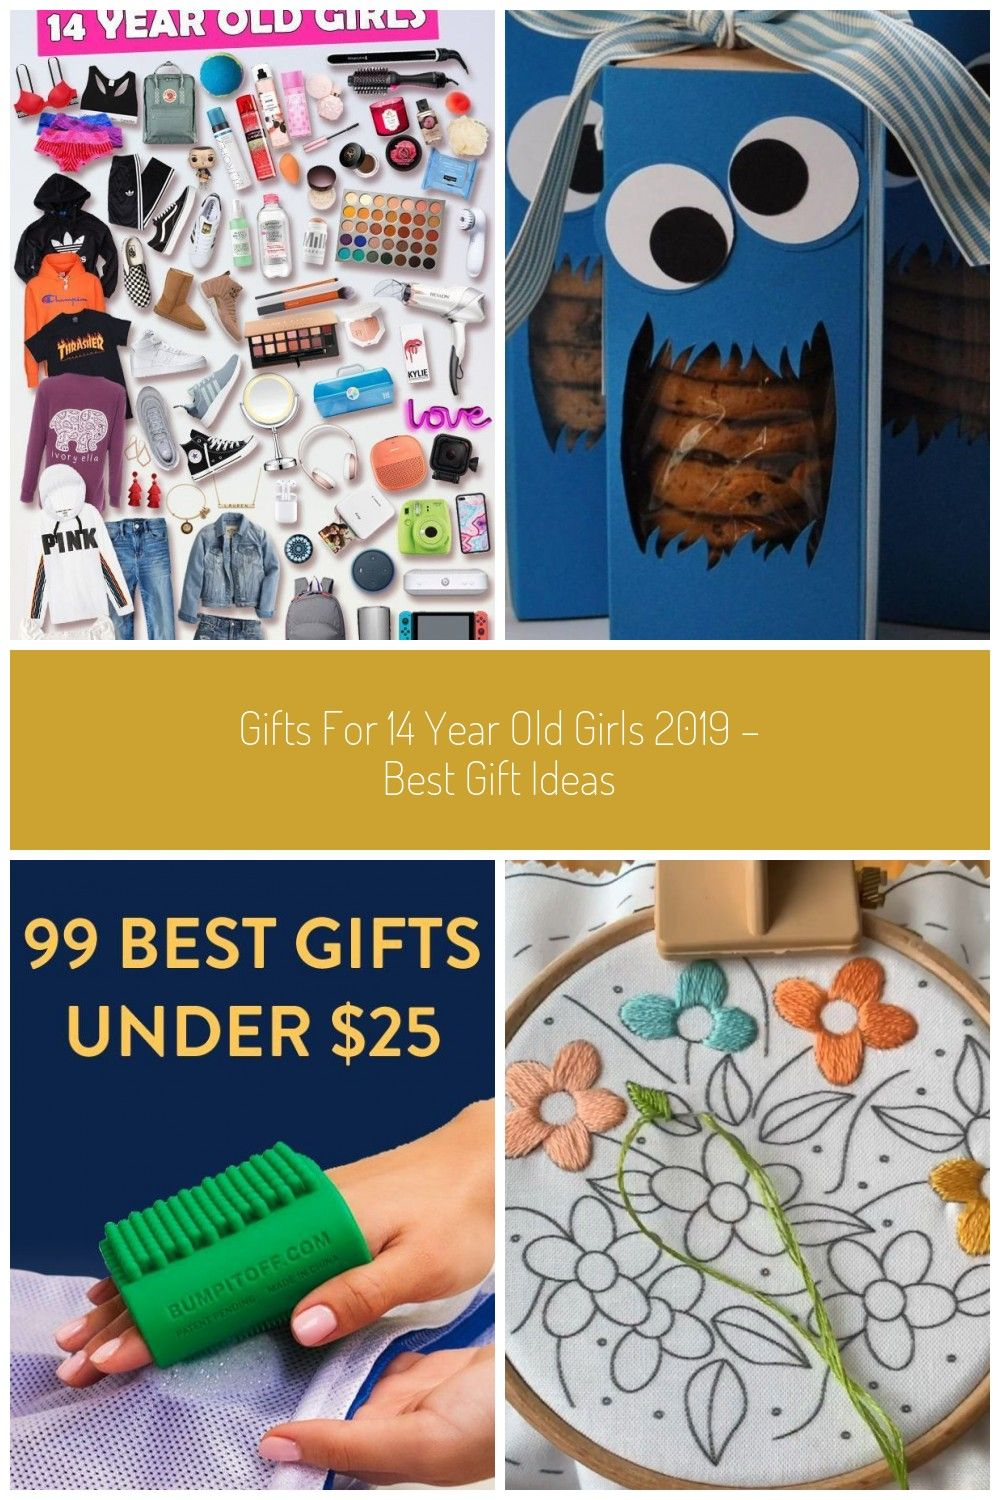 Gifts for 14 year old girls 2019 best gift ideas cool